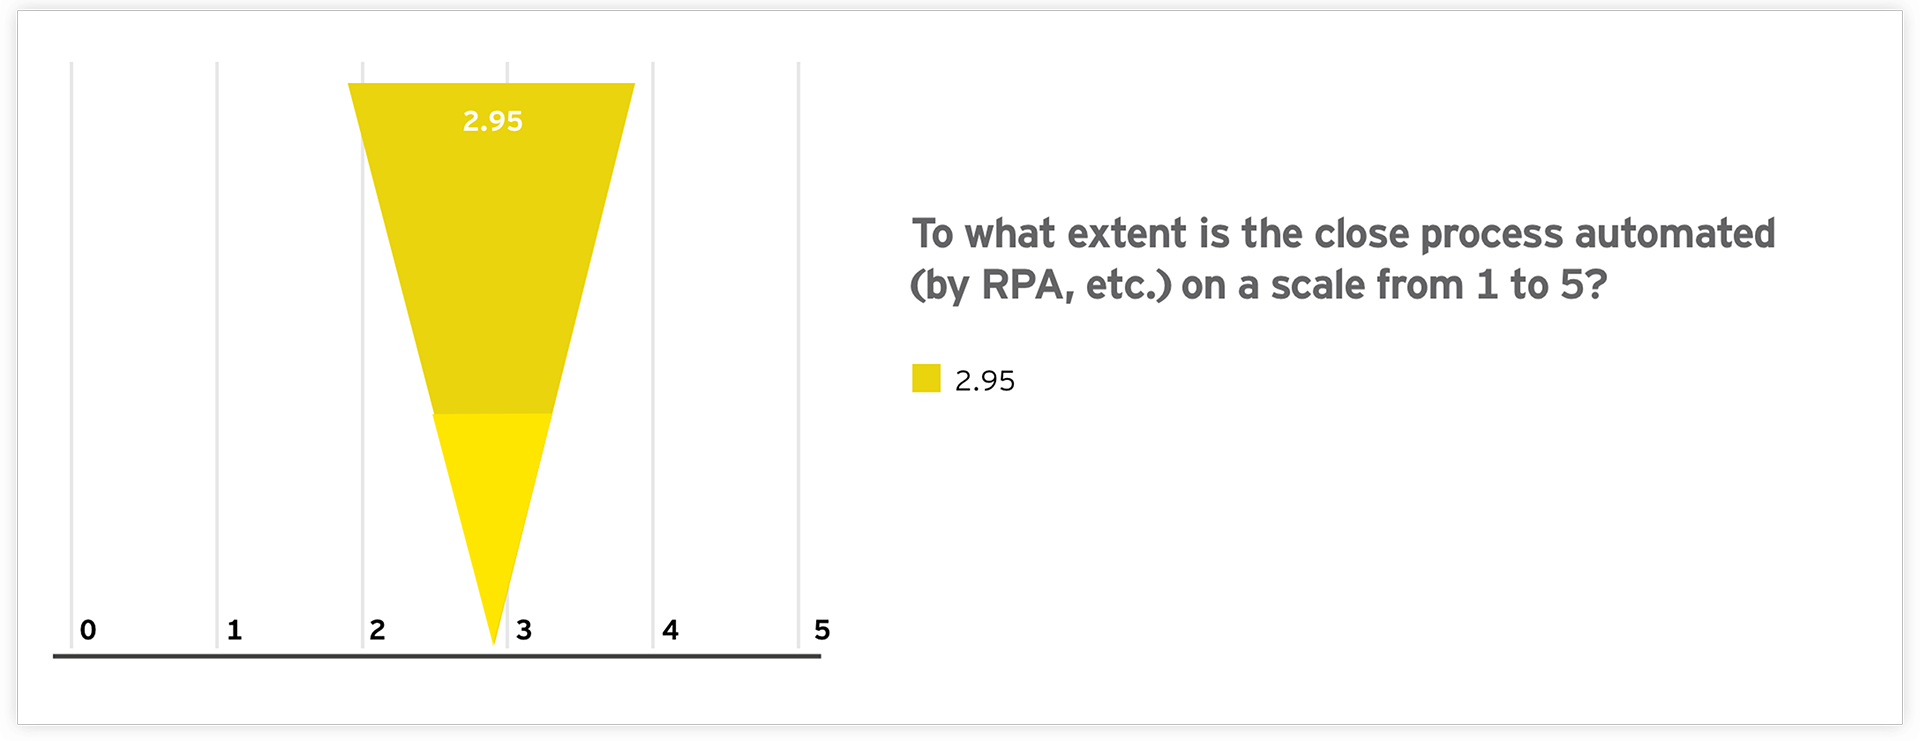 Graph: To what extent is the close process automated on a scale from 1 to 5?